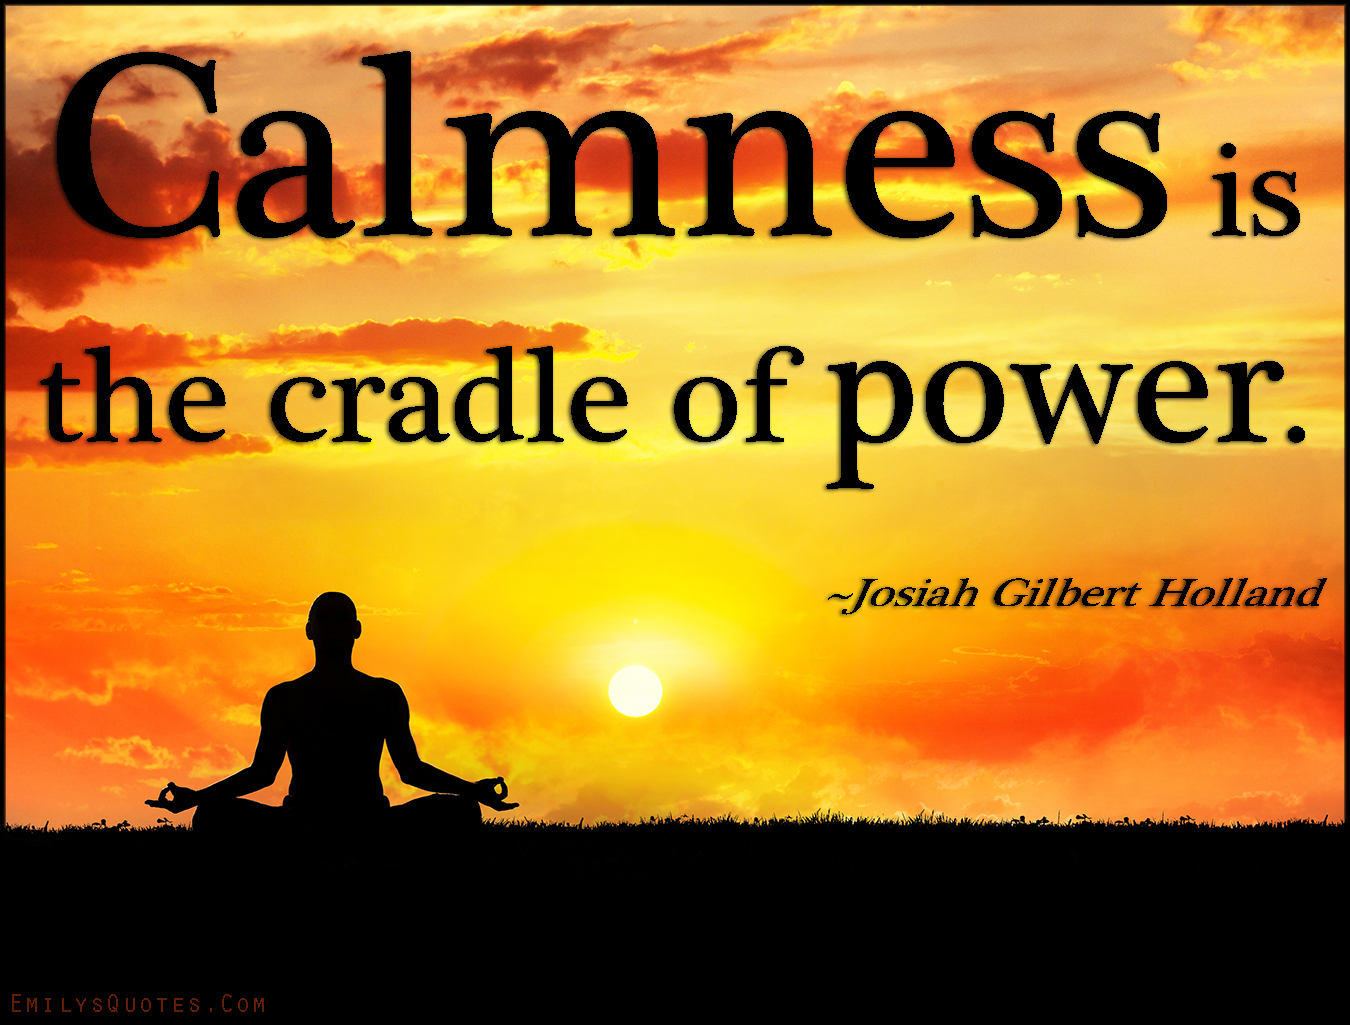 EmilysQuotes.Com - calmness, cradle, power, strength, wisdom, Josiah Gilbert Holland